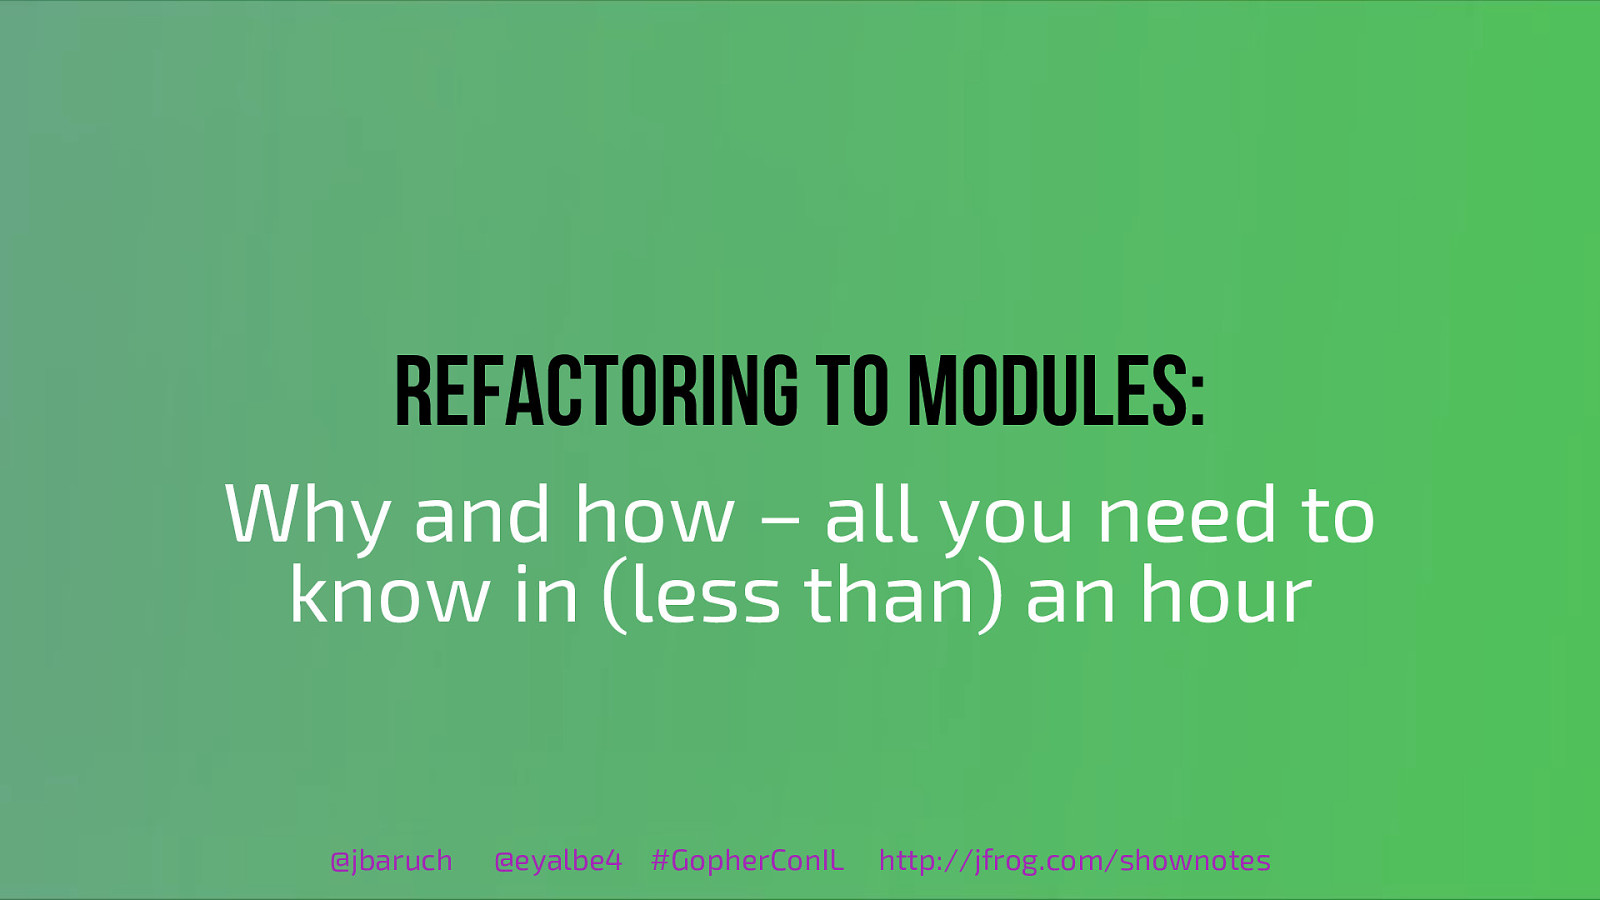 Refactoring to modules: Why and how – all you need to know in (less than) an hour by Baruch Sadogursky